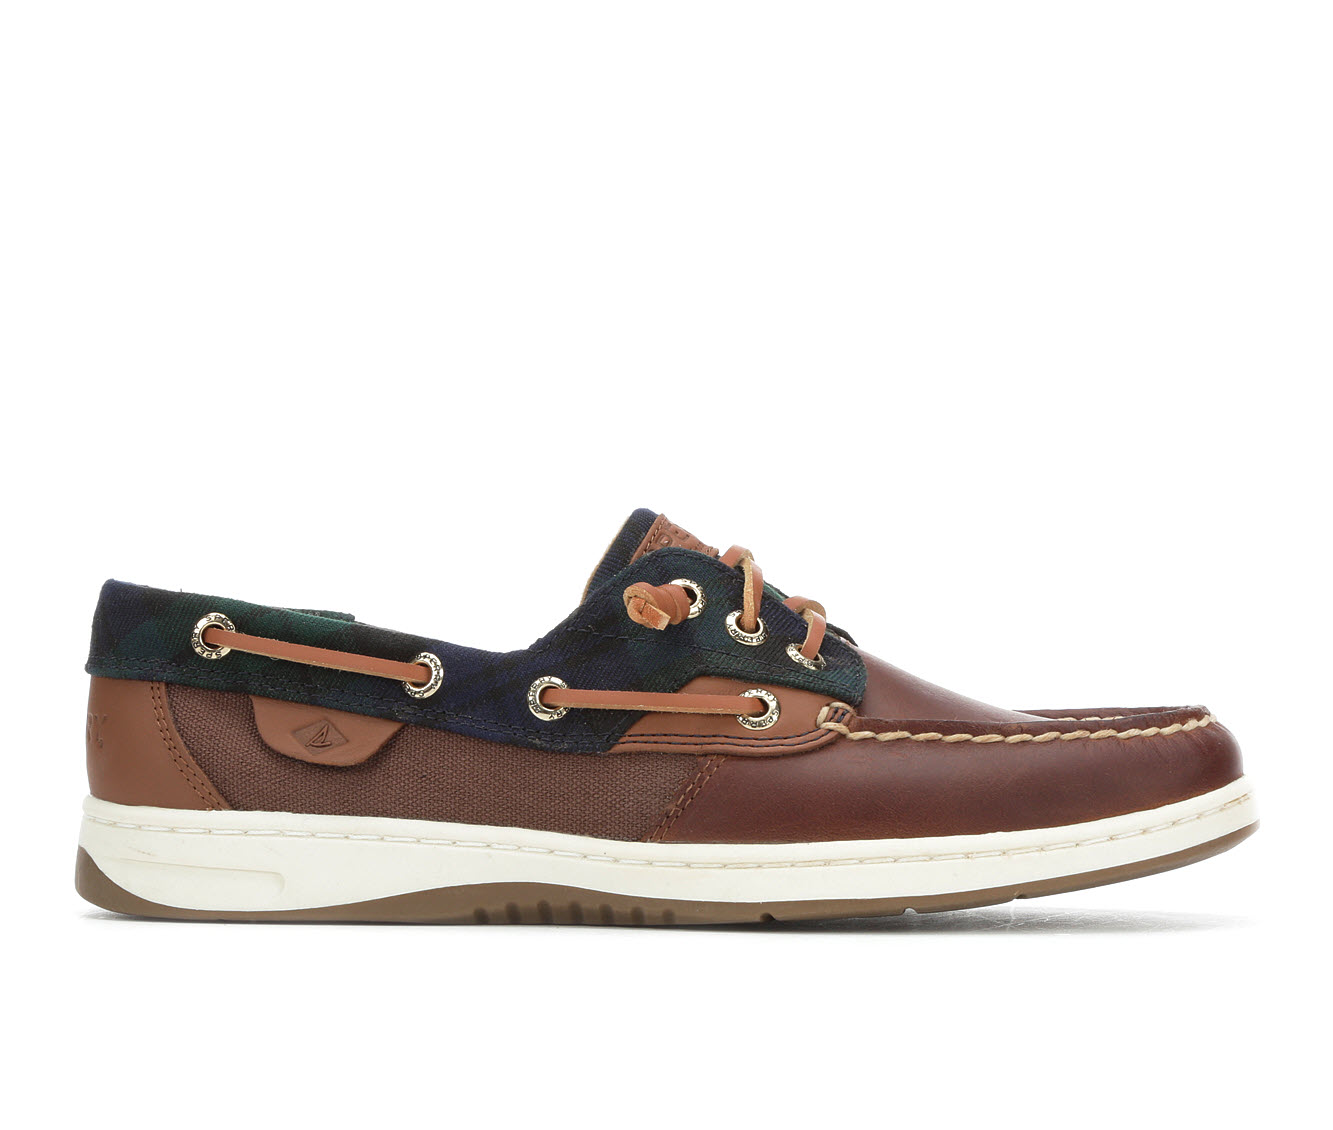 Sperry Rosefish Plaid Women's Shoe (Brown Leather)